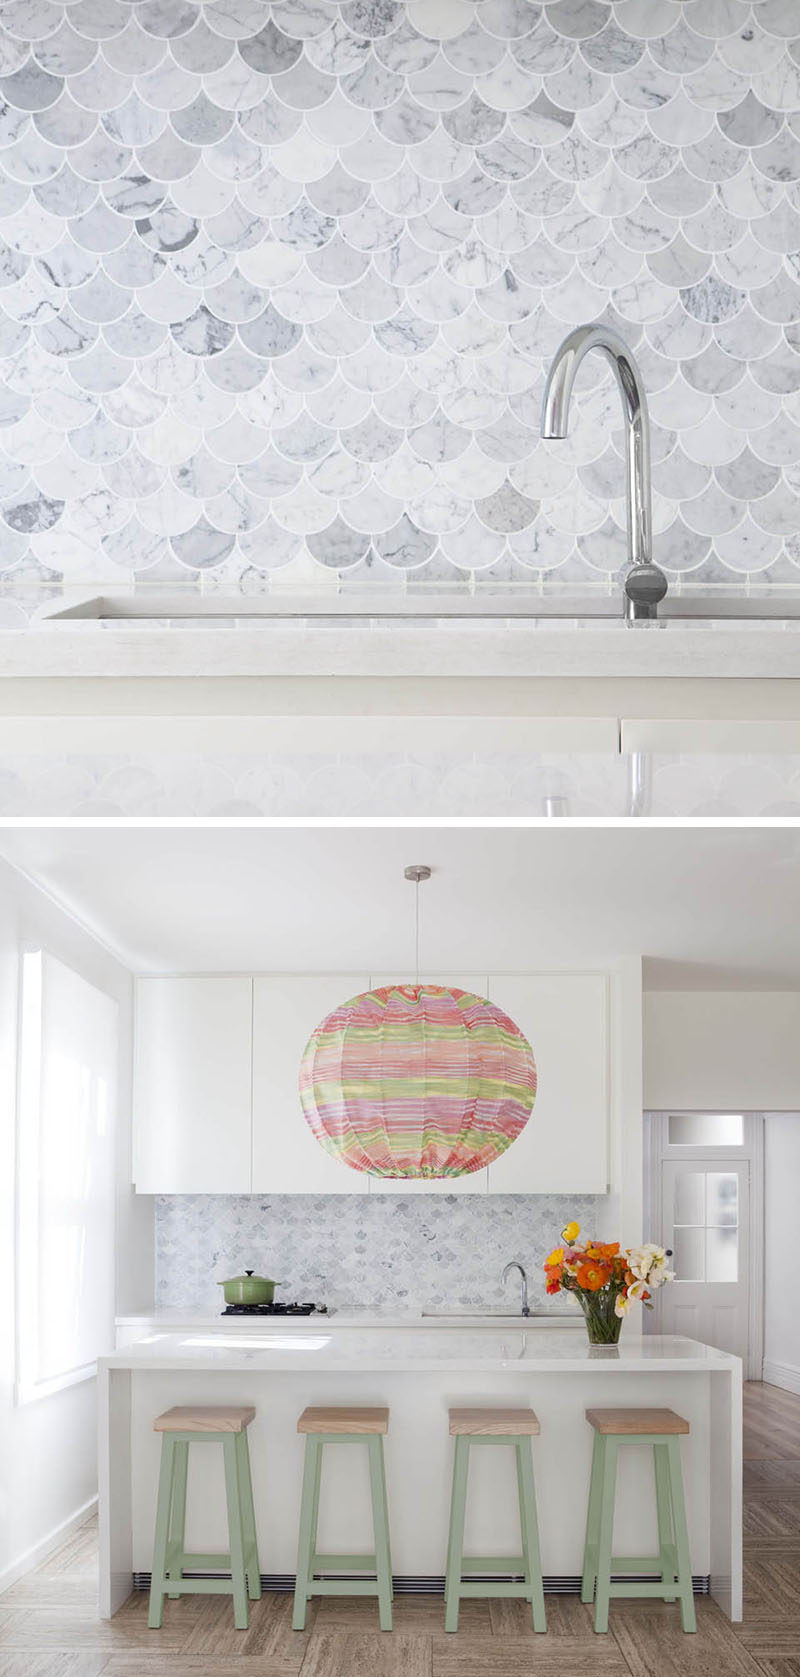 Unique Kitchen Wall Tiles